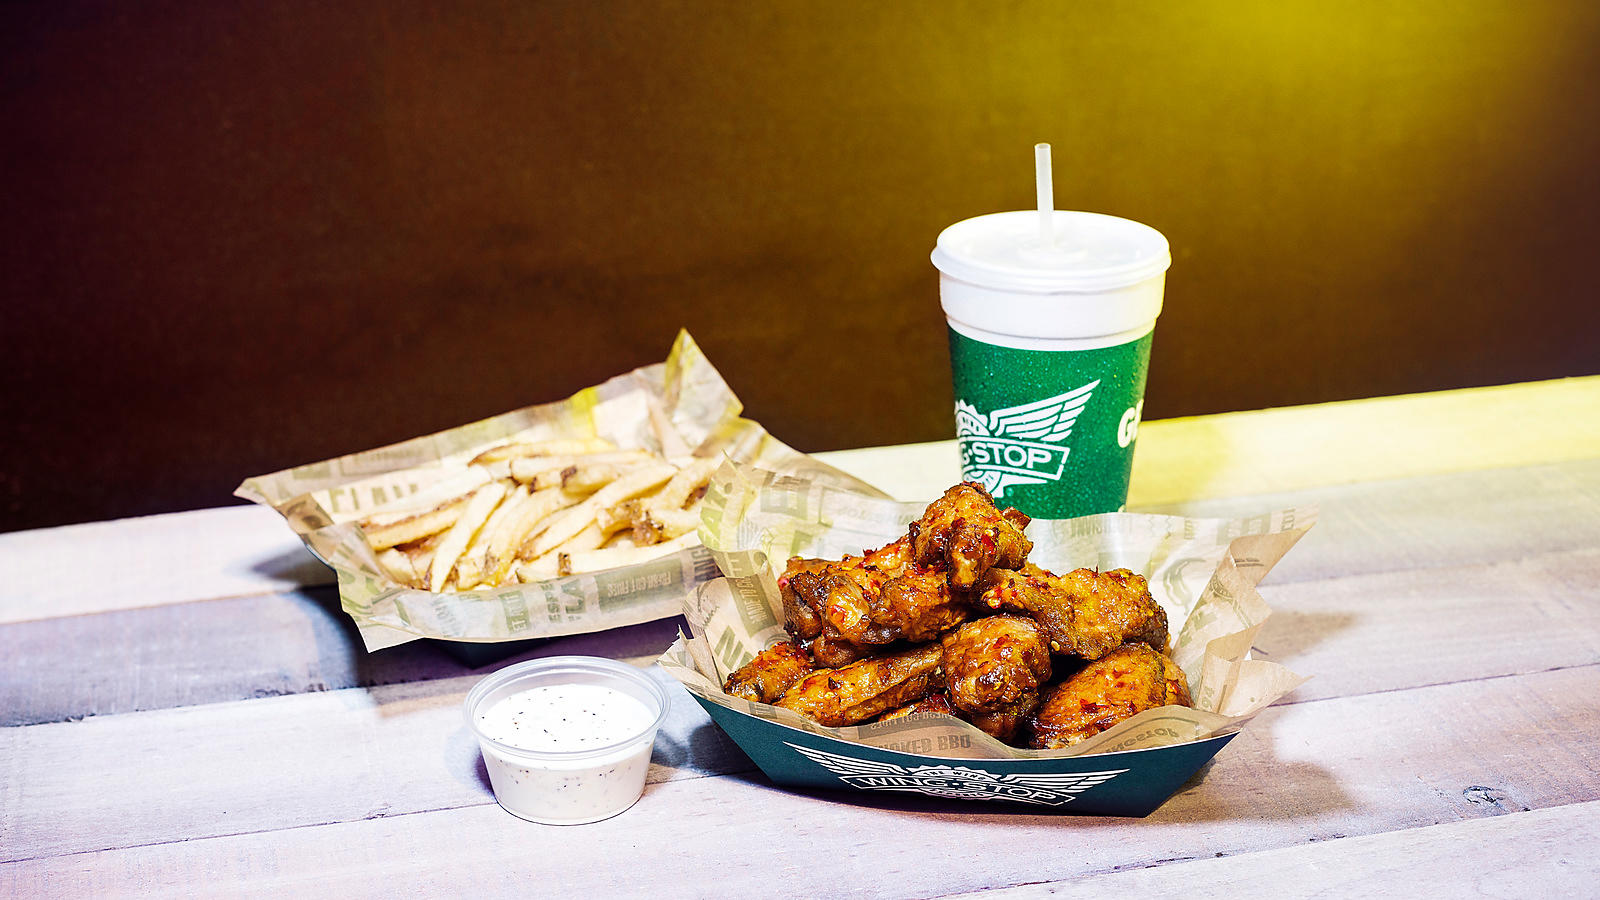 Wingstop_ChickenWings_BBQWings_FrenchFries_BrandPhotography_SamanthaLeviPhotography